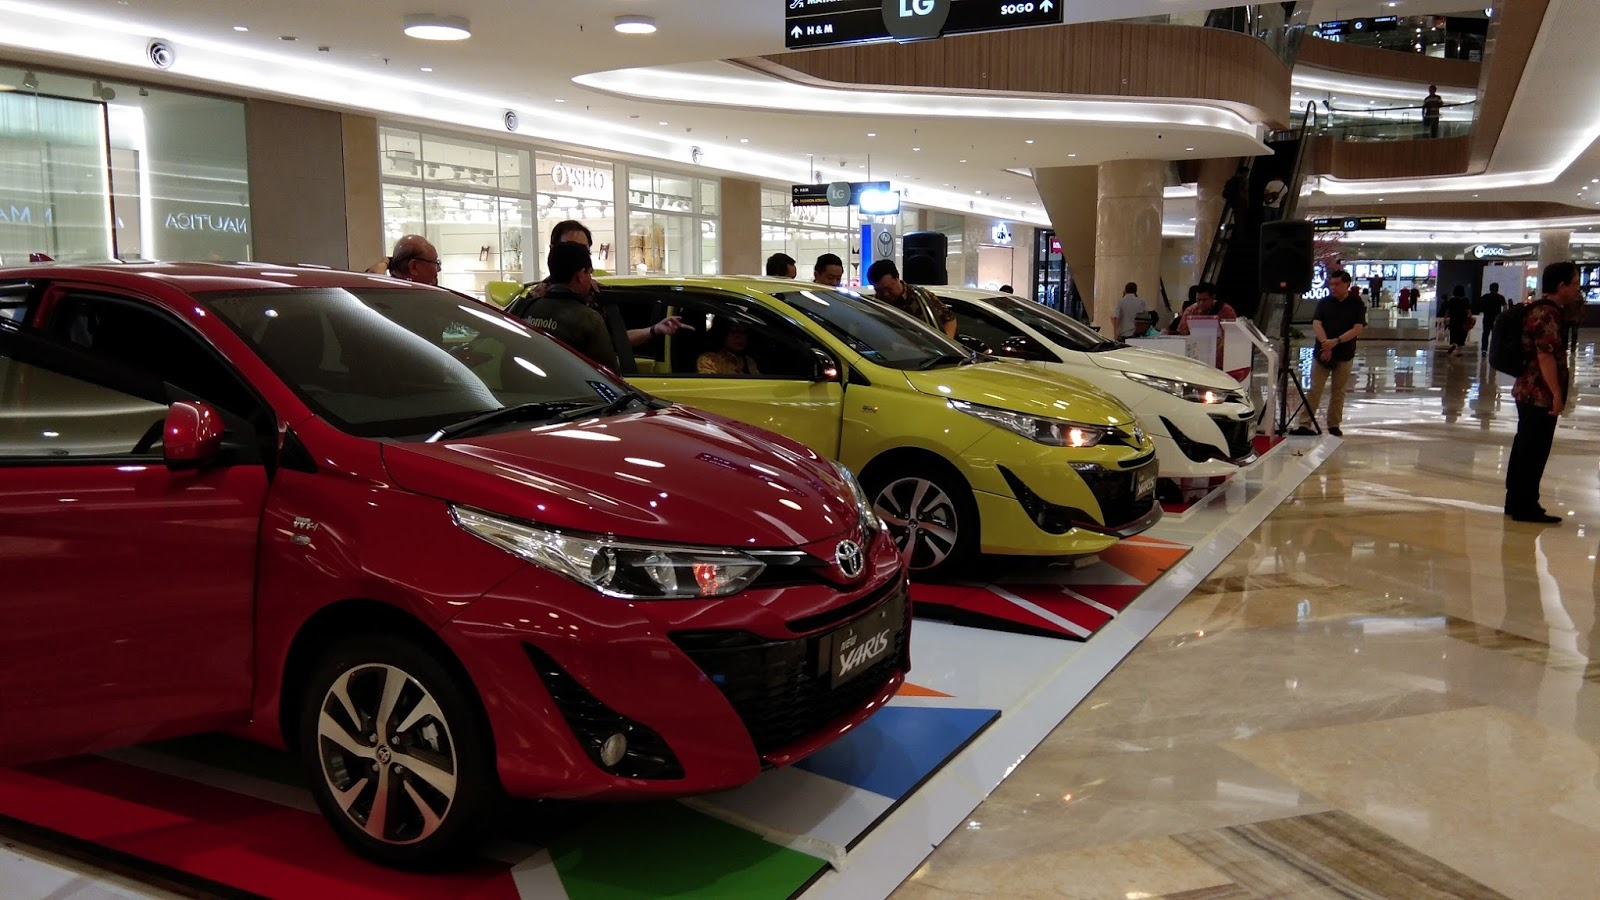 toyota yaris trd putih all new camry thailand hadirkan dna motorsport launching di